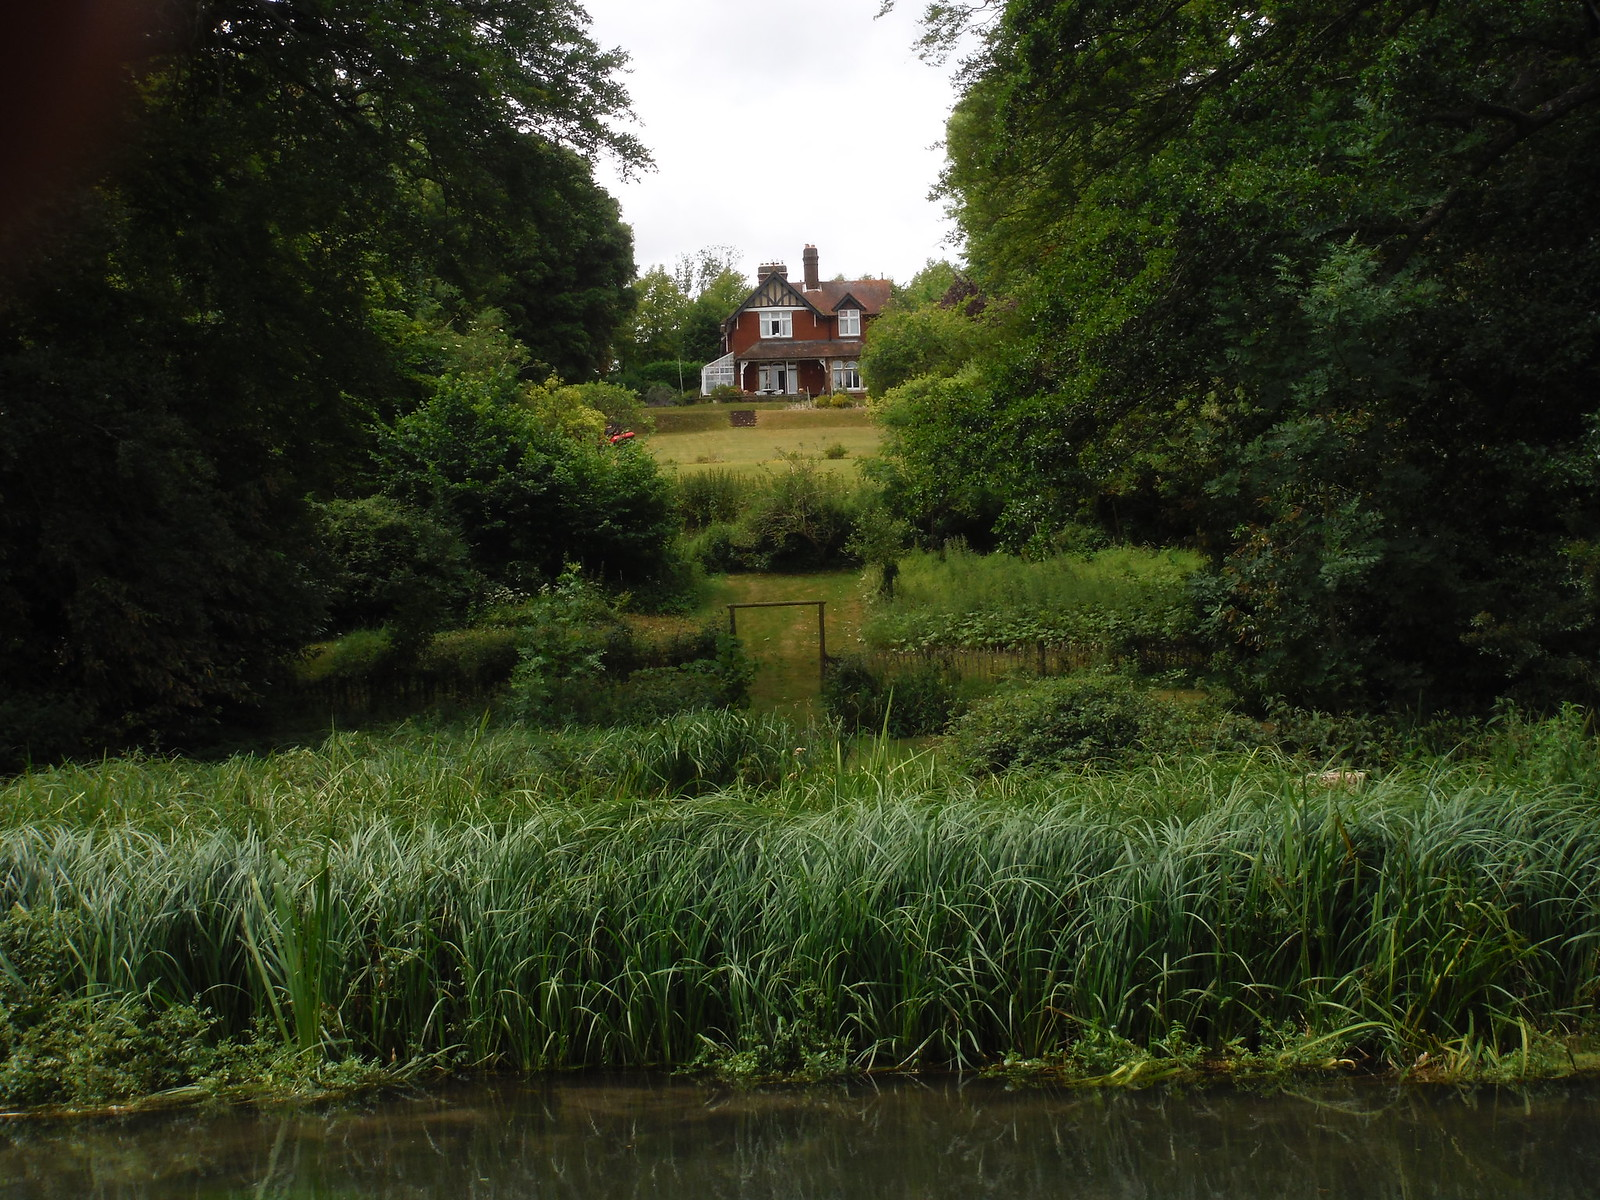 House in Shawford, viewed from the Itchen Way SWC Walk 15 : Winchester Circular